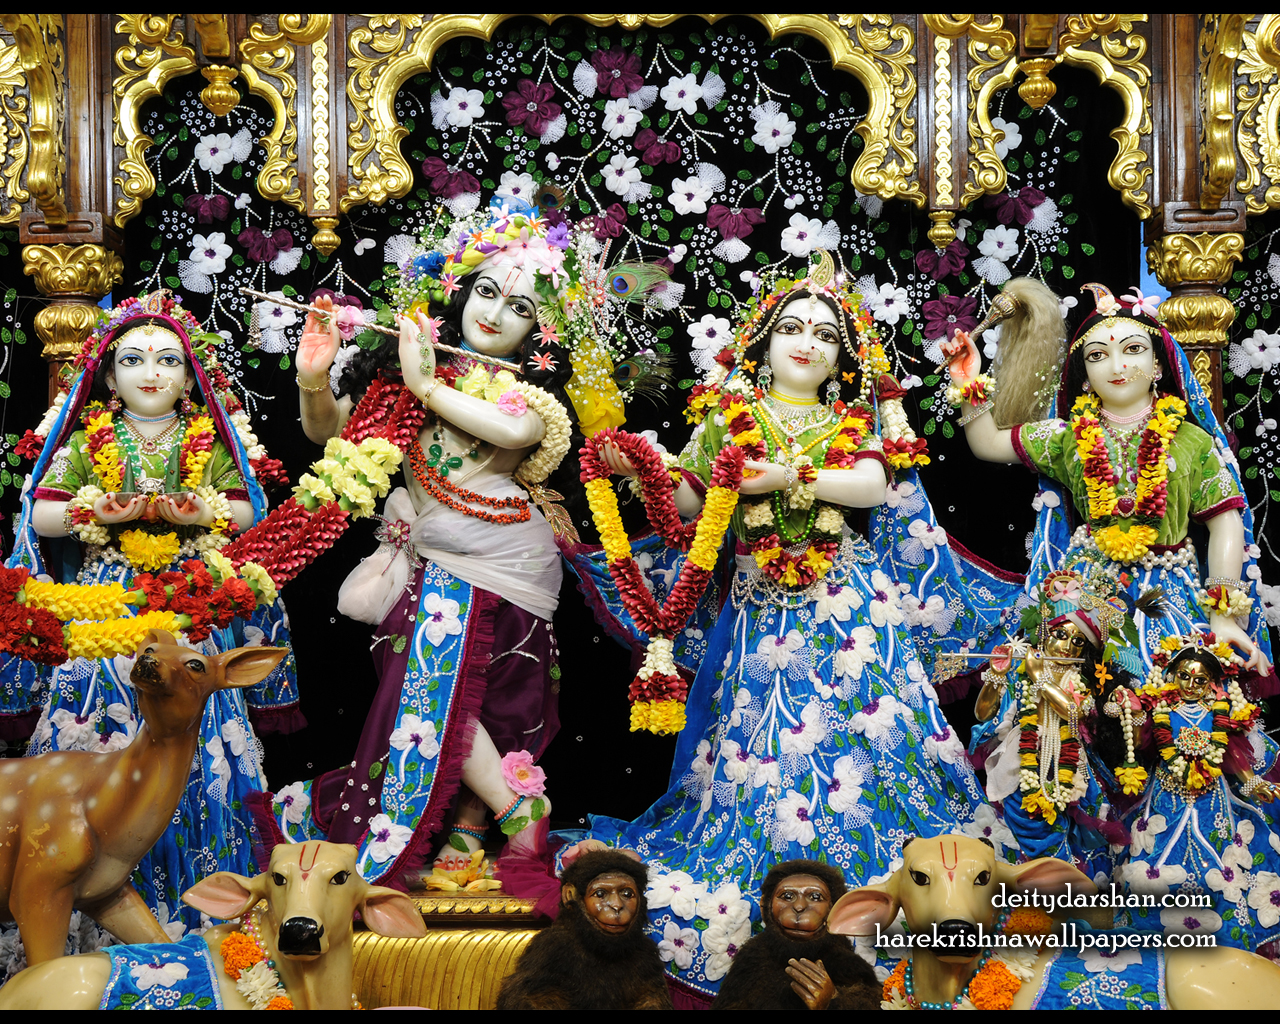 Sri Sri Radha Gopinath Lalita Vishakha Wallpaper (058) Size 1280x1024 Download